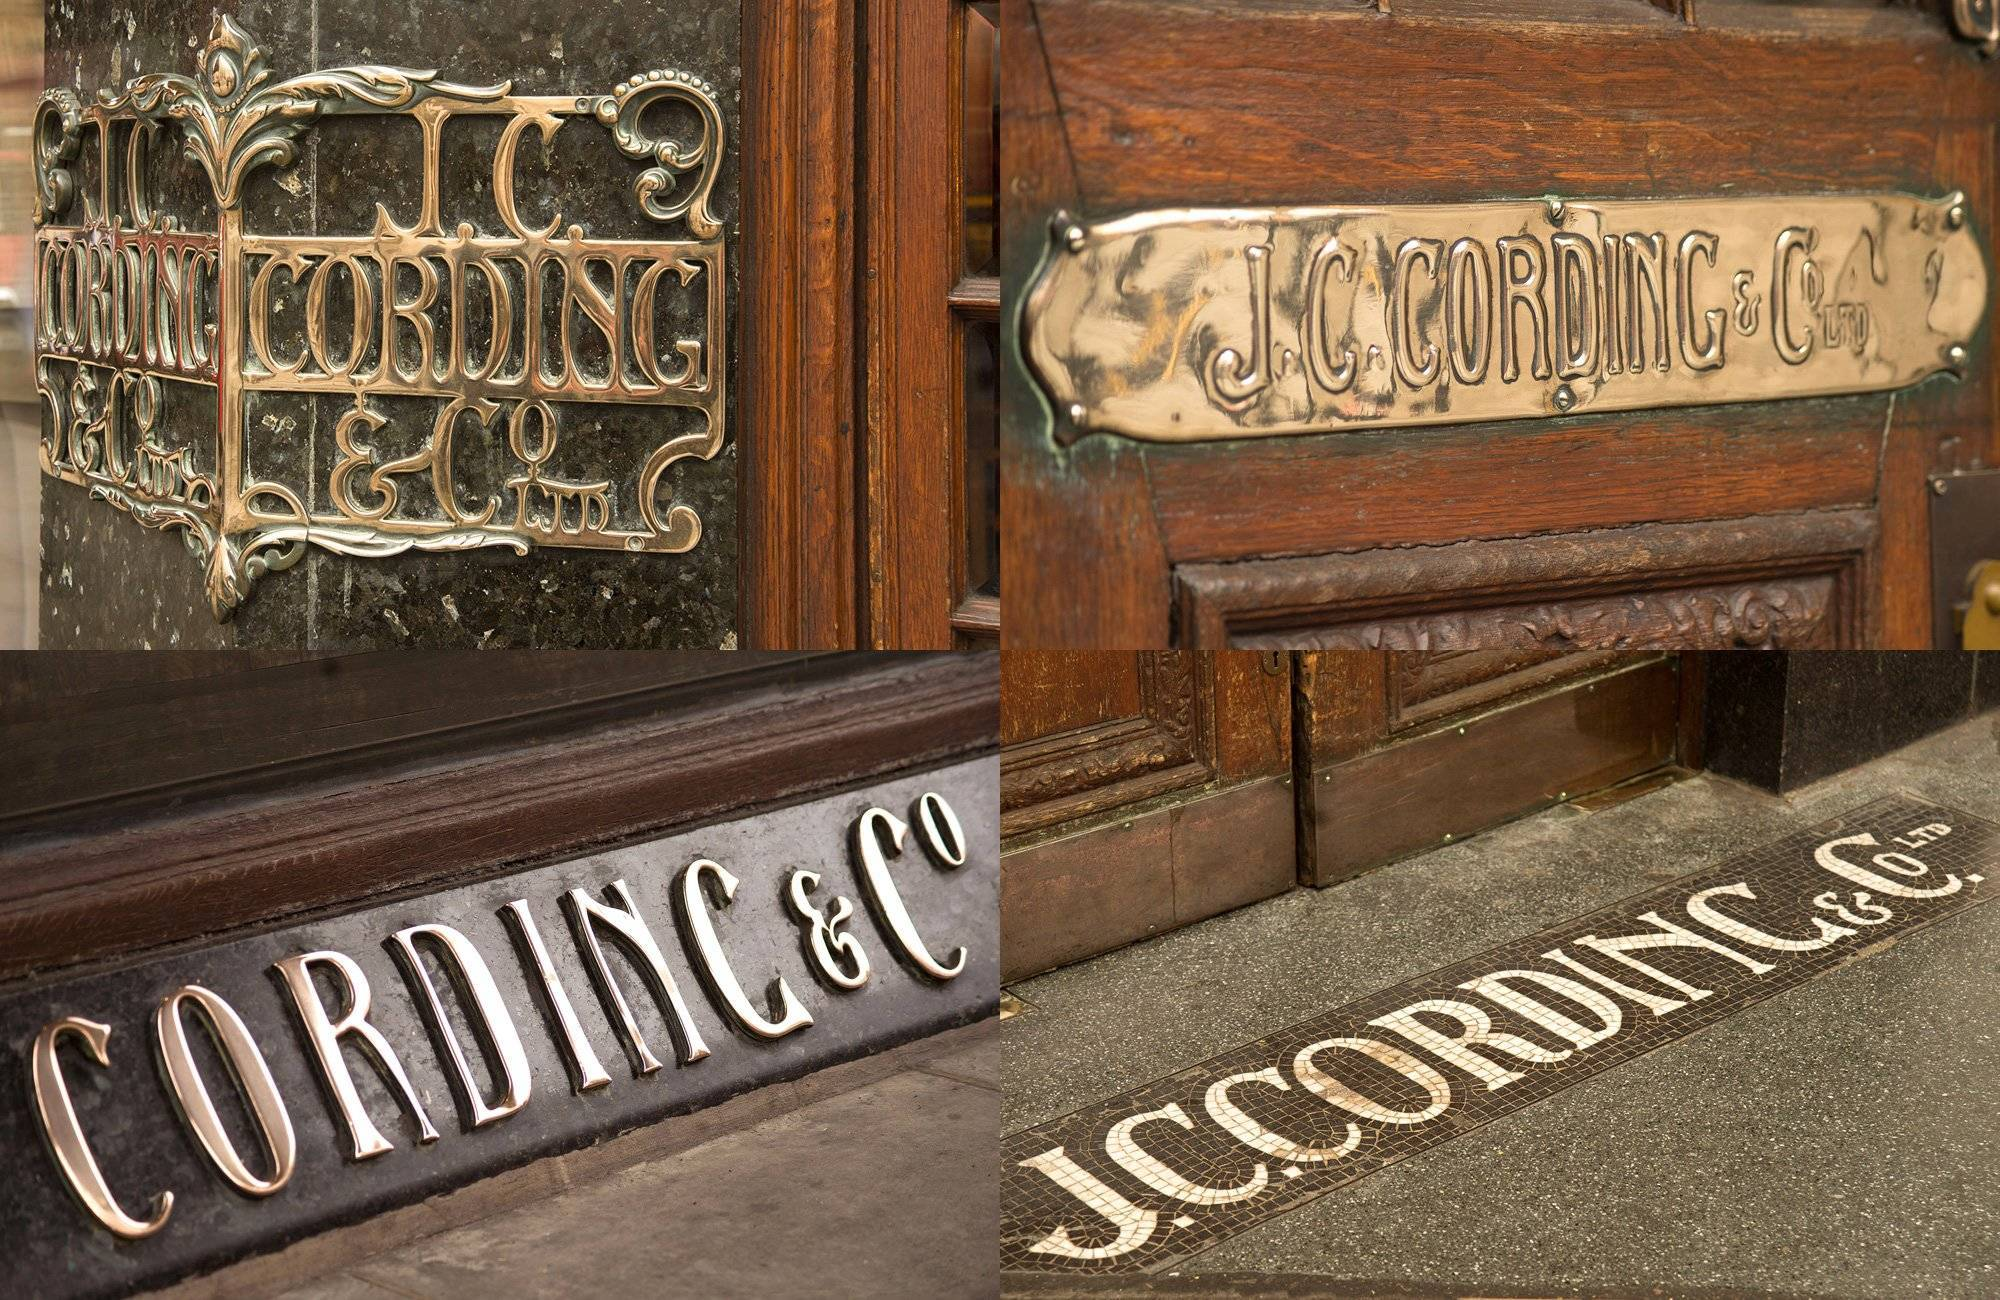 Edwardian signs on the exterior of Cordings